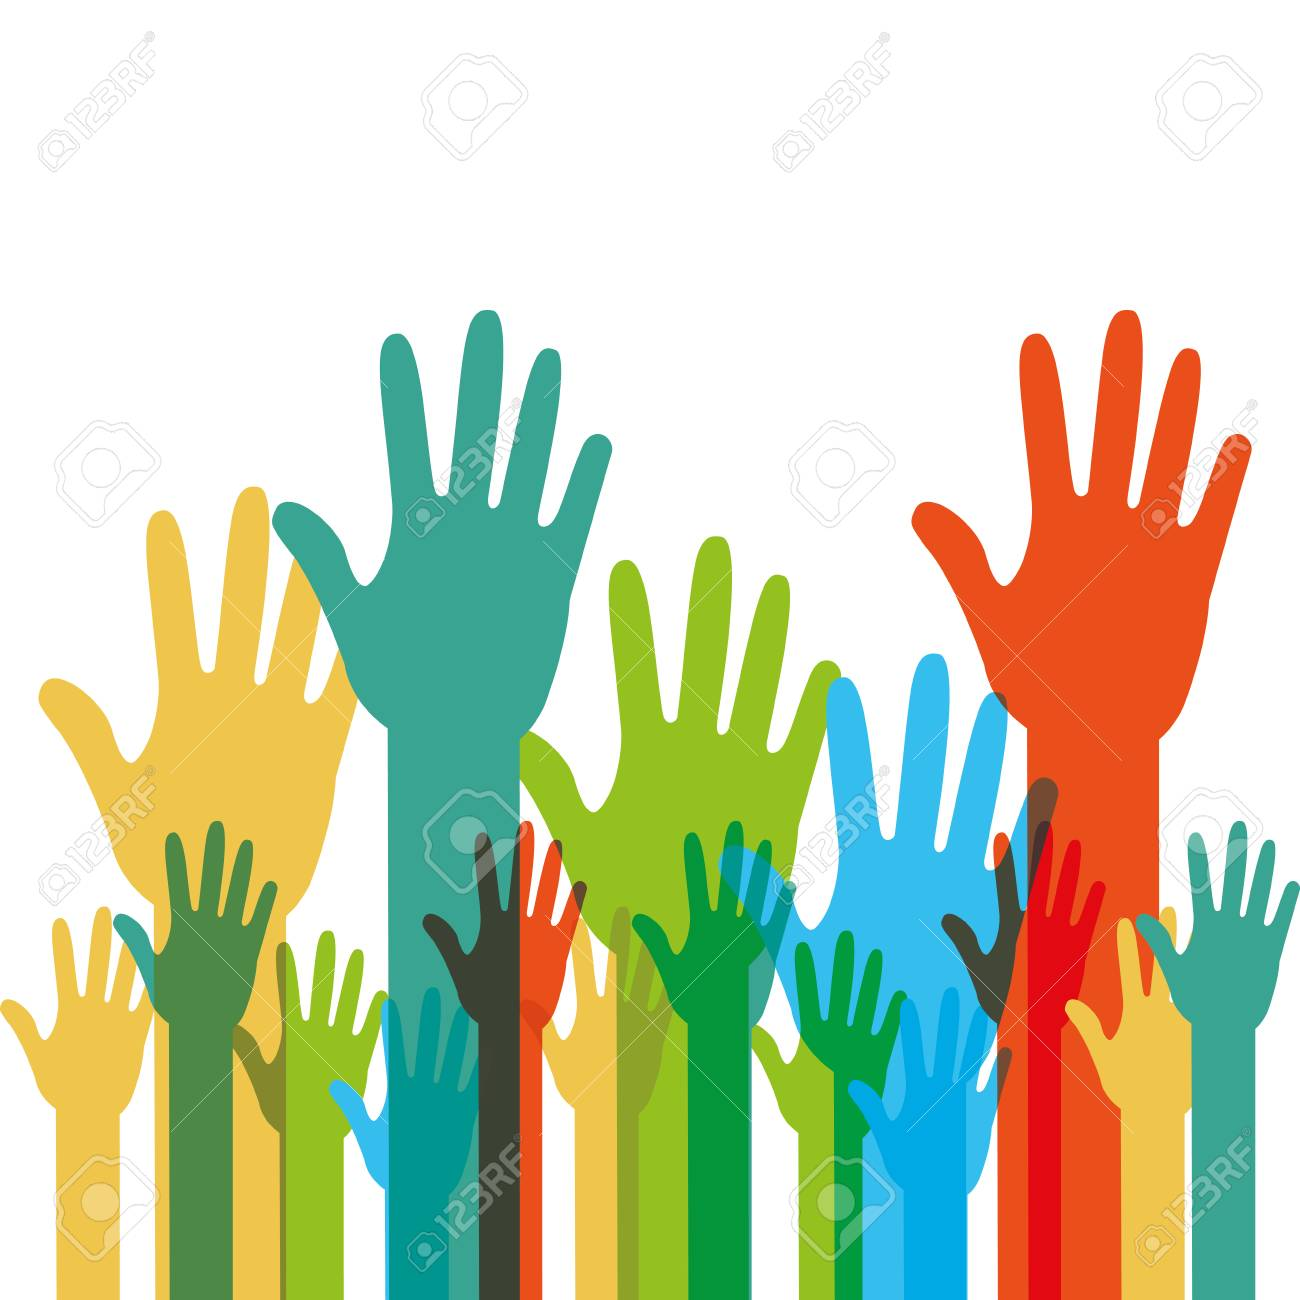 Human hands raised with different colors vector illustration. - 93693633